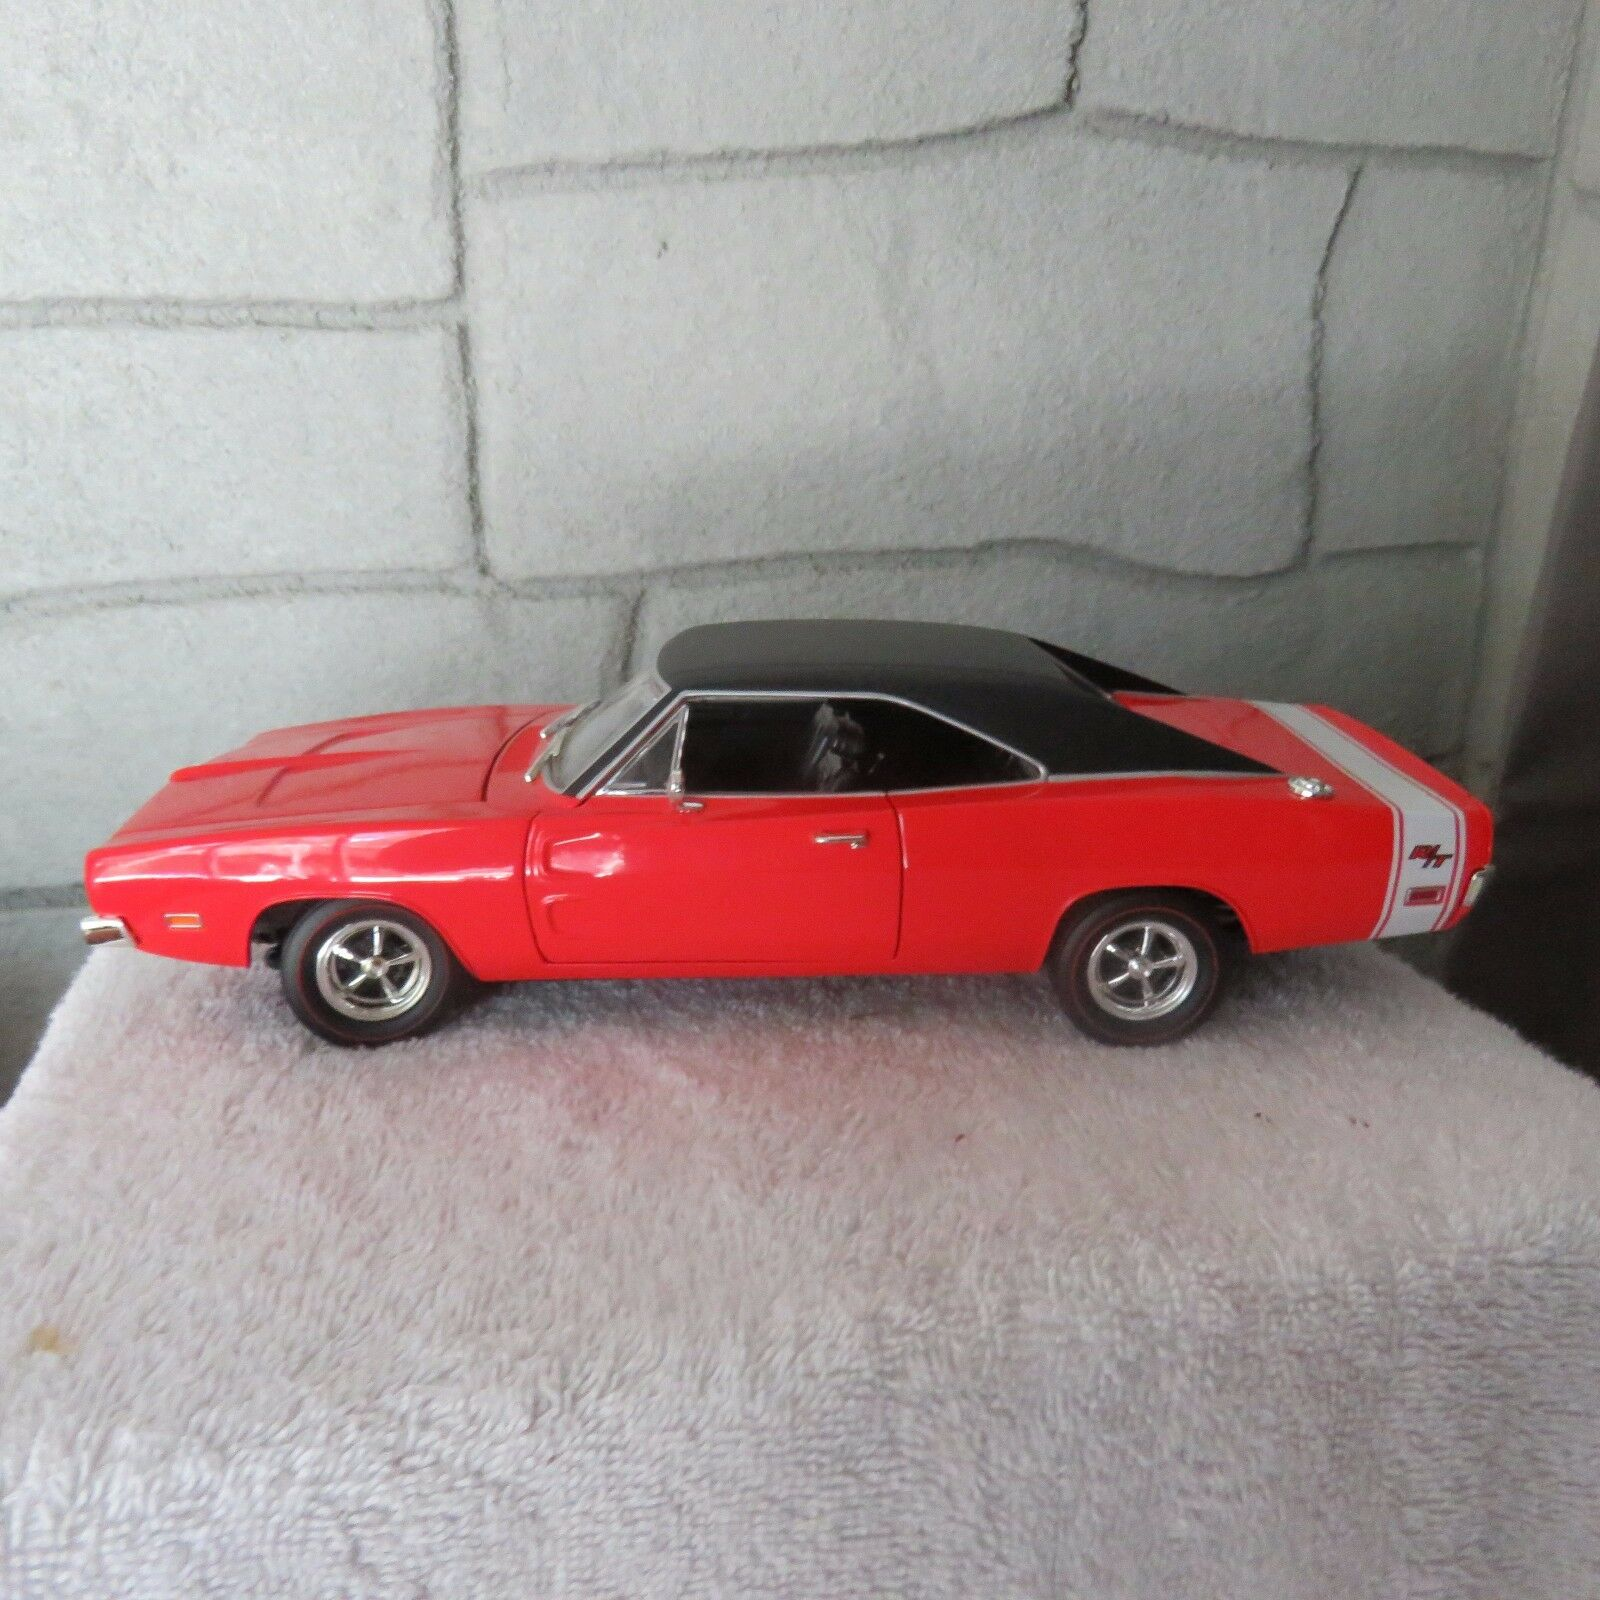 outlet 1969 1969 1969 Dodge Charger Hemi R T 1 18 scale die cast caliente ruedas rosso  ultimi stili